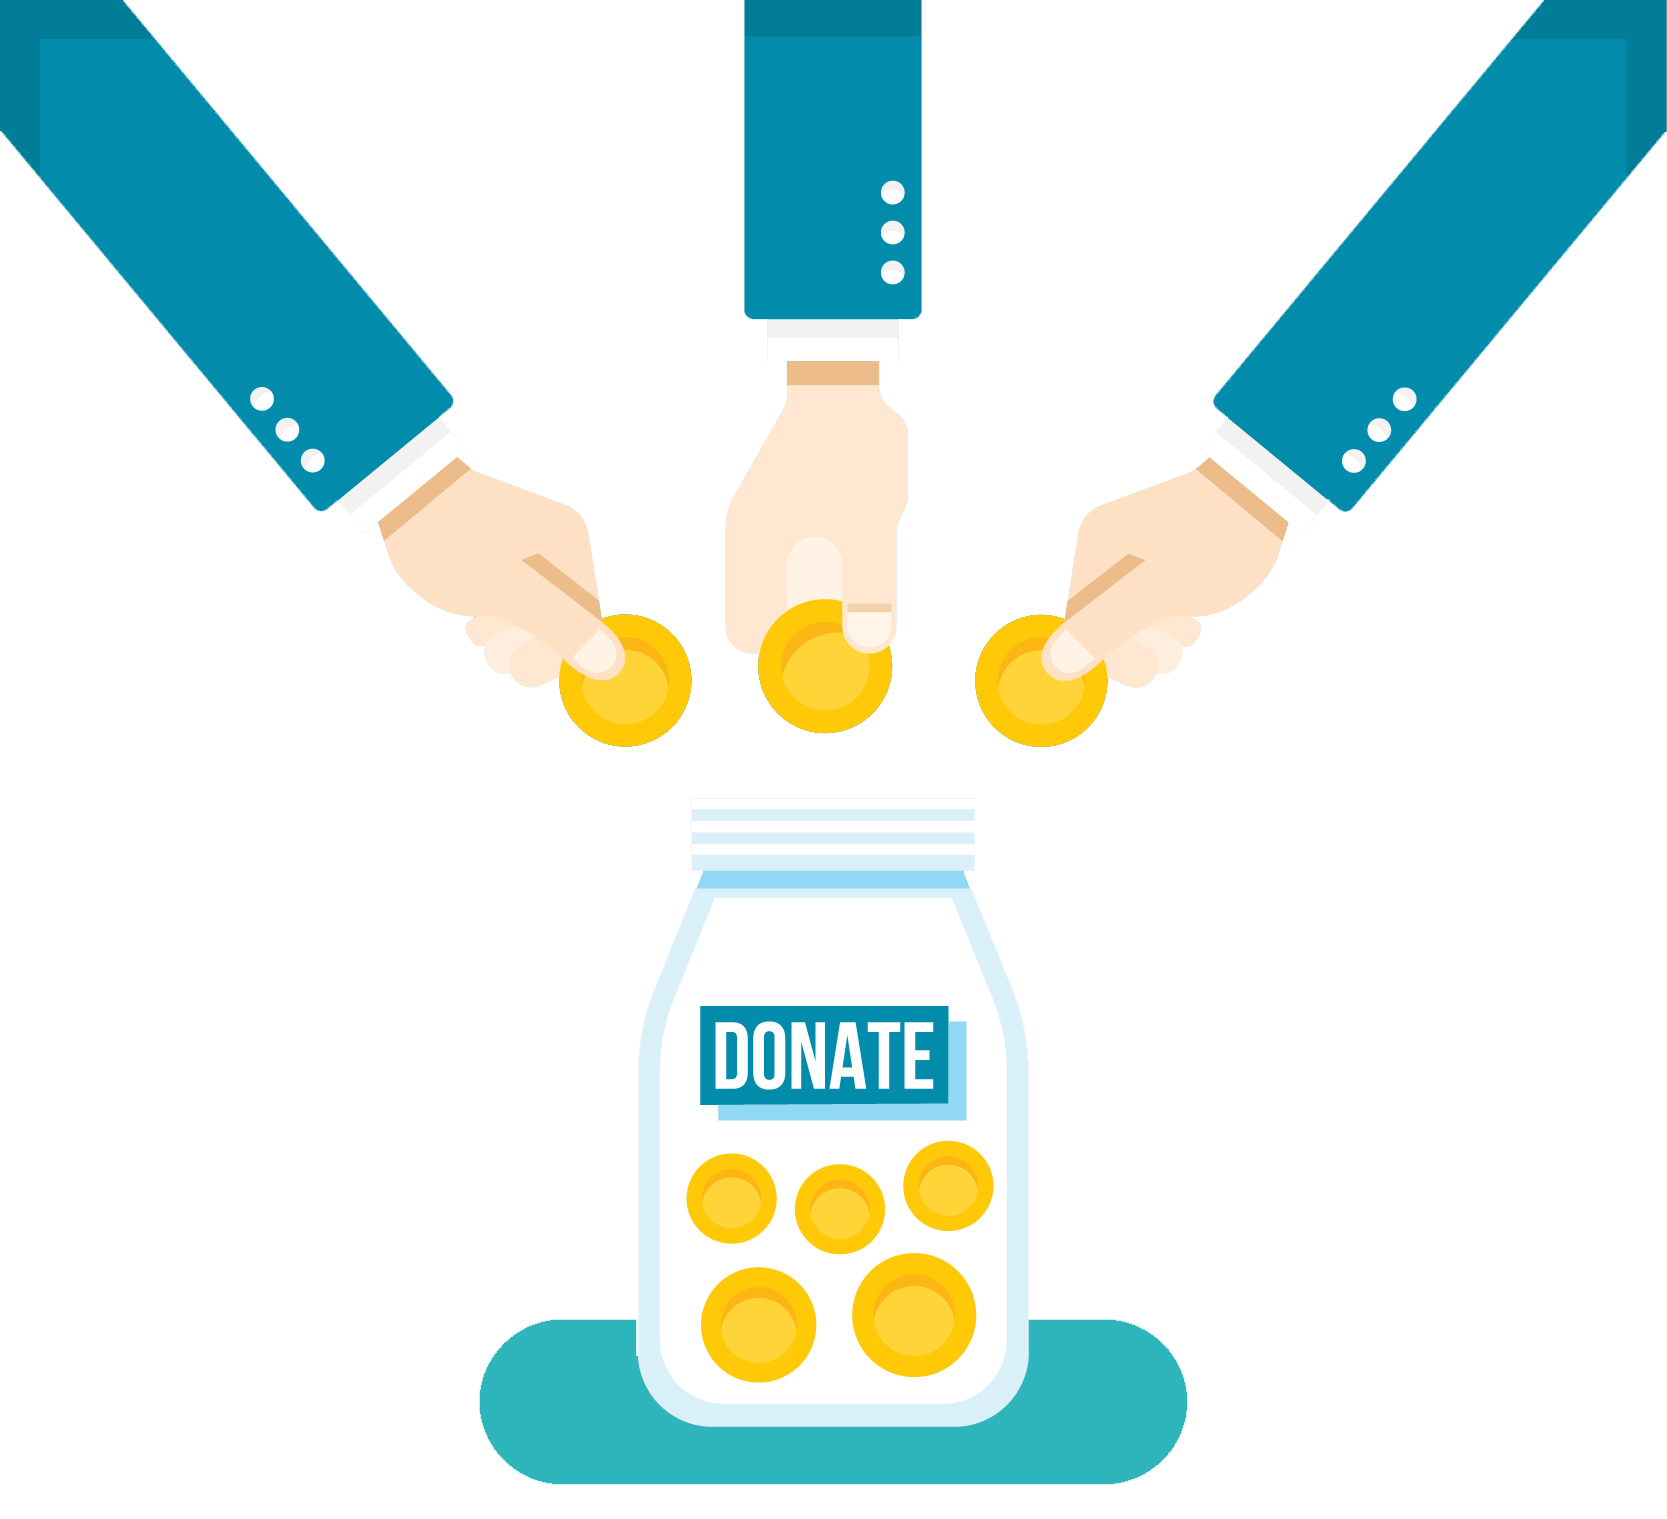 Giving money clipart image transparent stock Charity Reports, Reviews and Resources image transparent stock